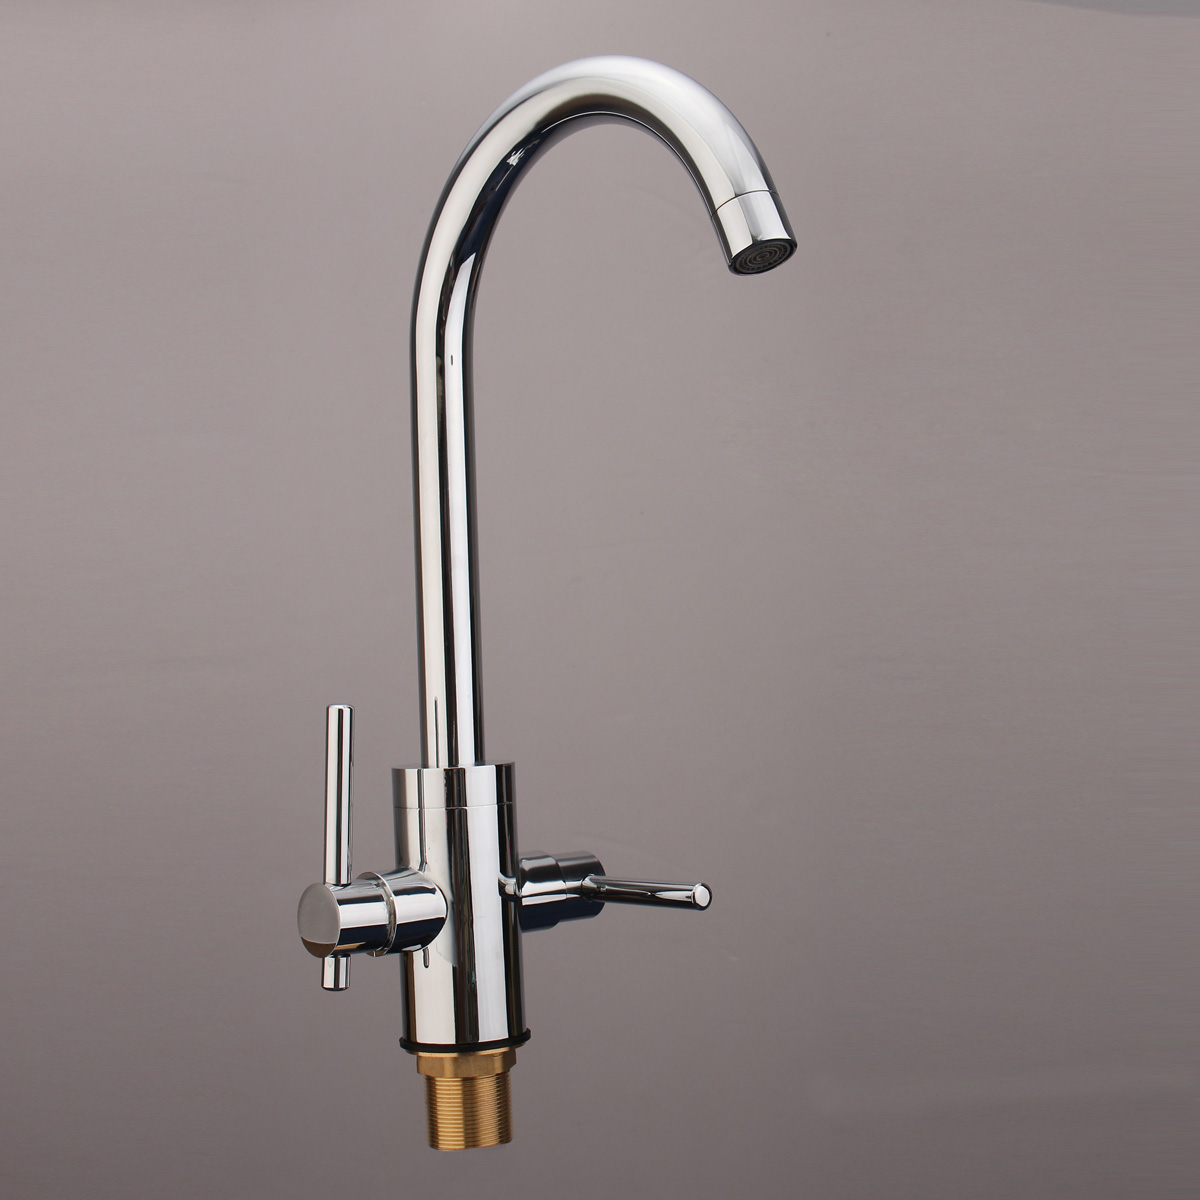 New Double Handles Hot/Cold Mixer Water Tap Basin Faucet